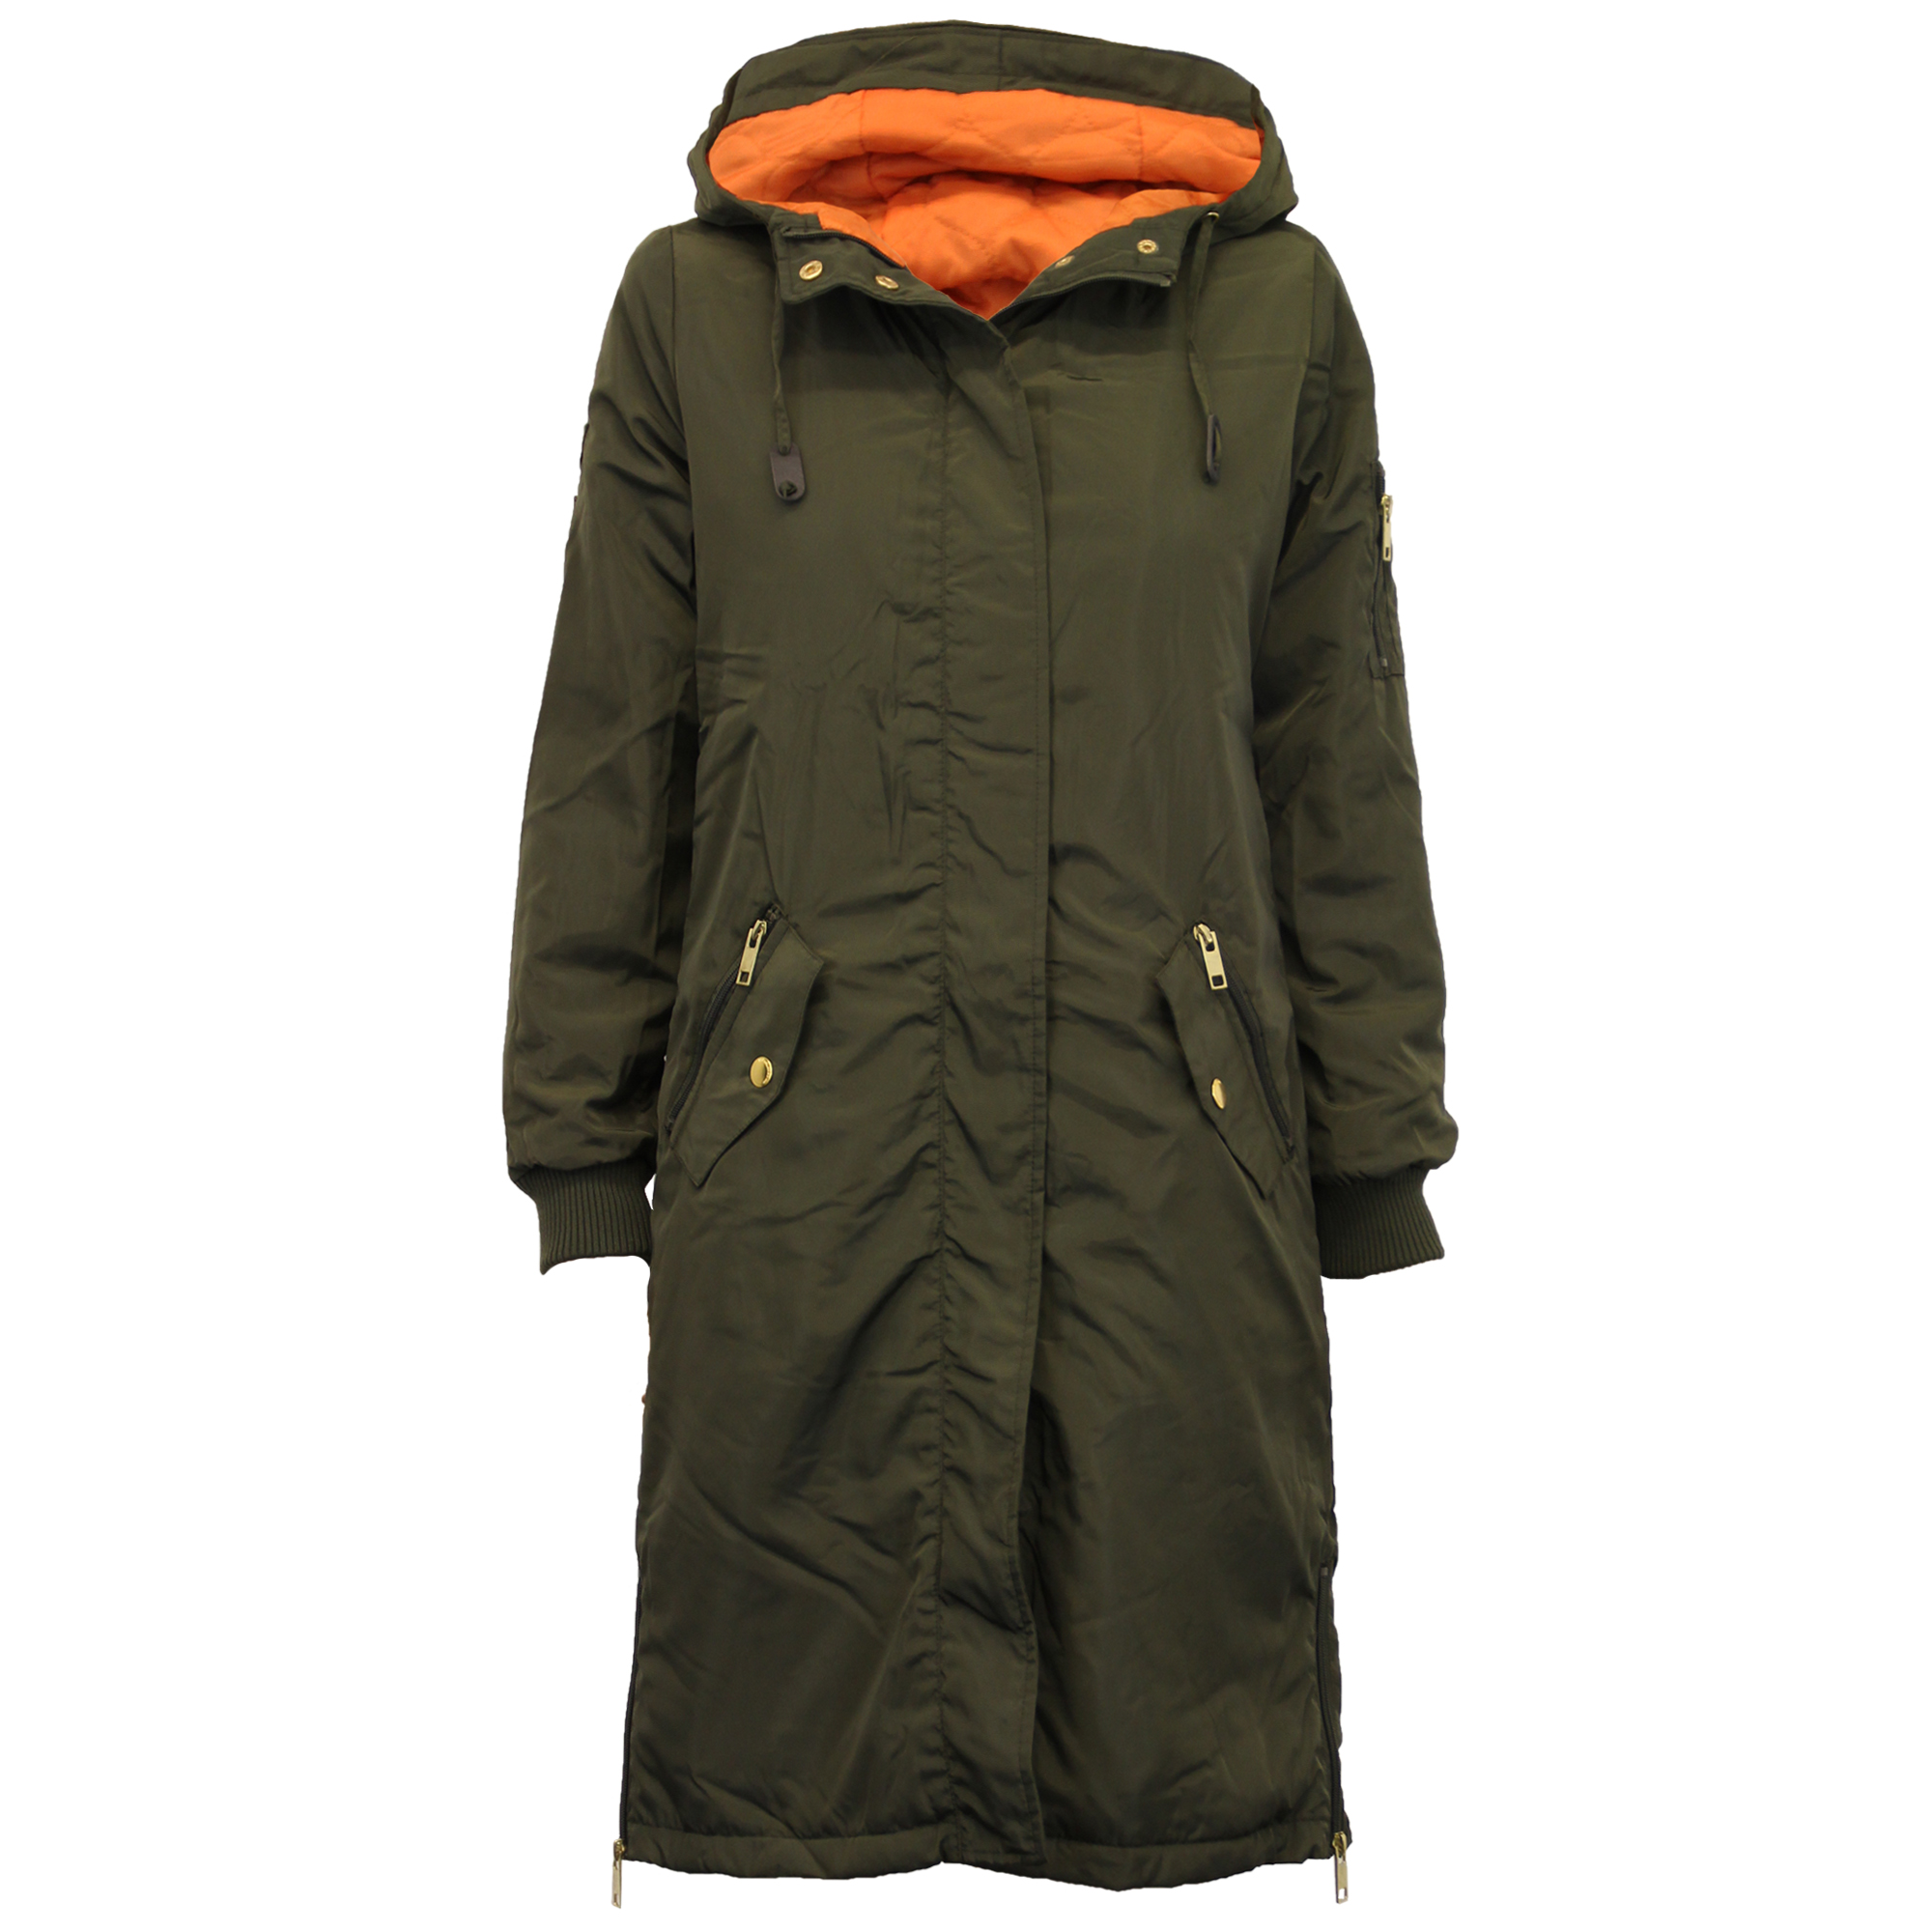 Ladies Jacket Brave Soul Womens Long Coat Hooded Padded Military ...